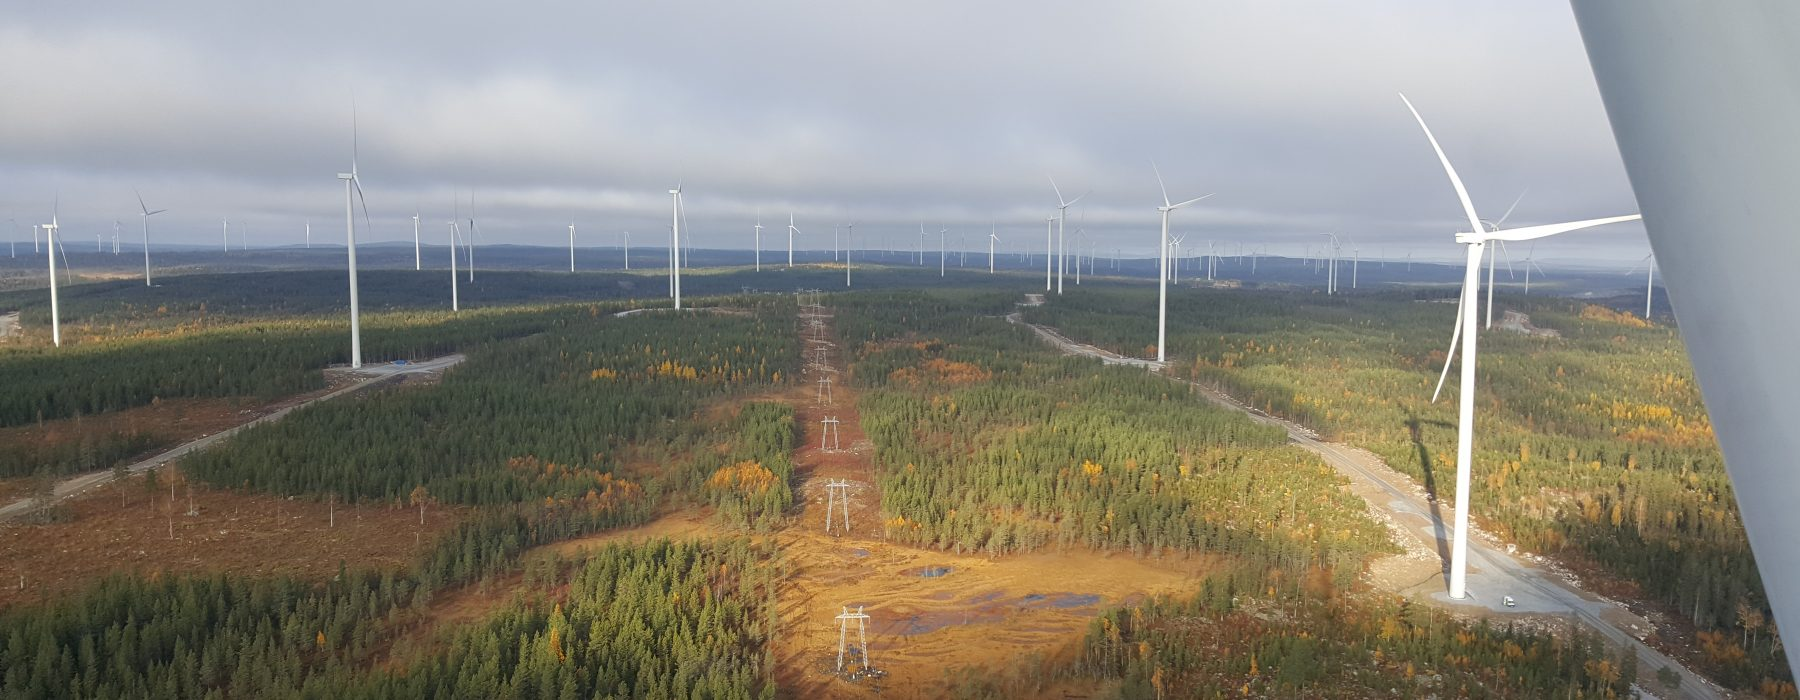 landscape image of an onshore wind farm